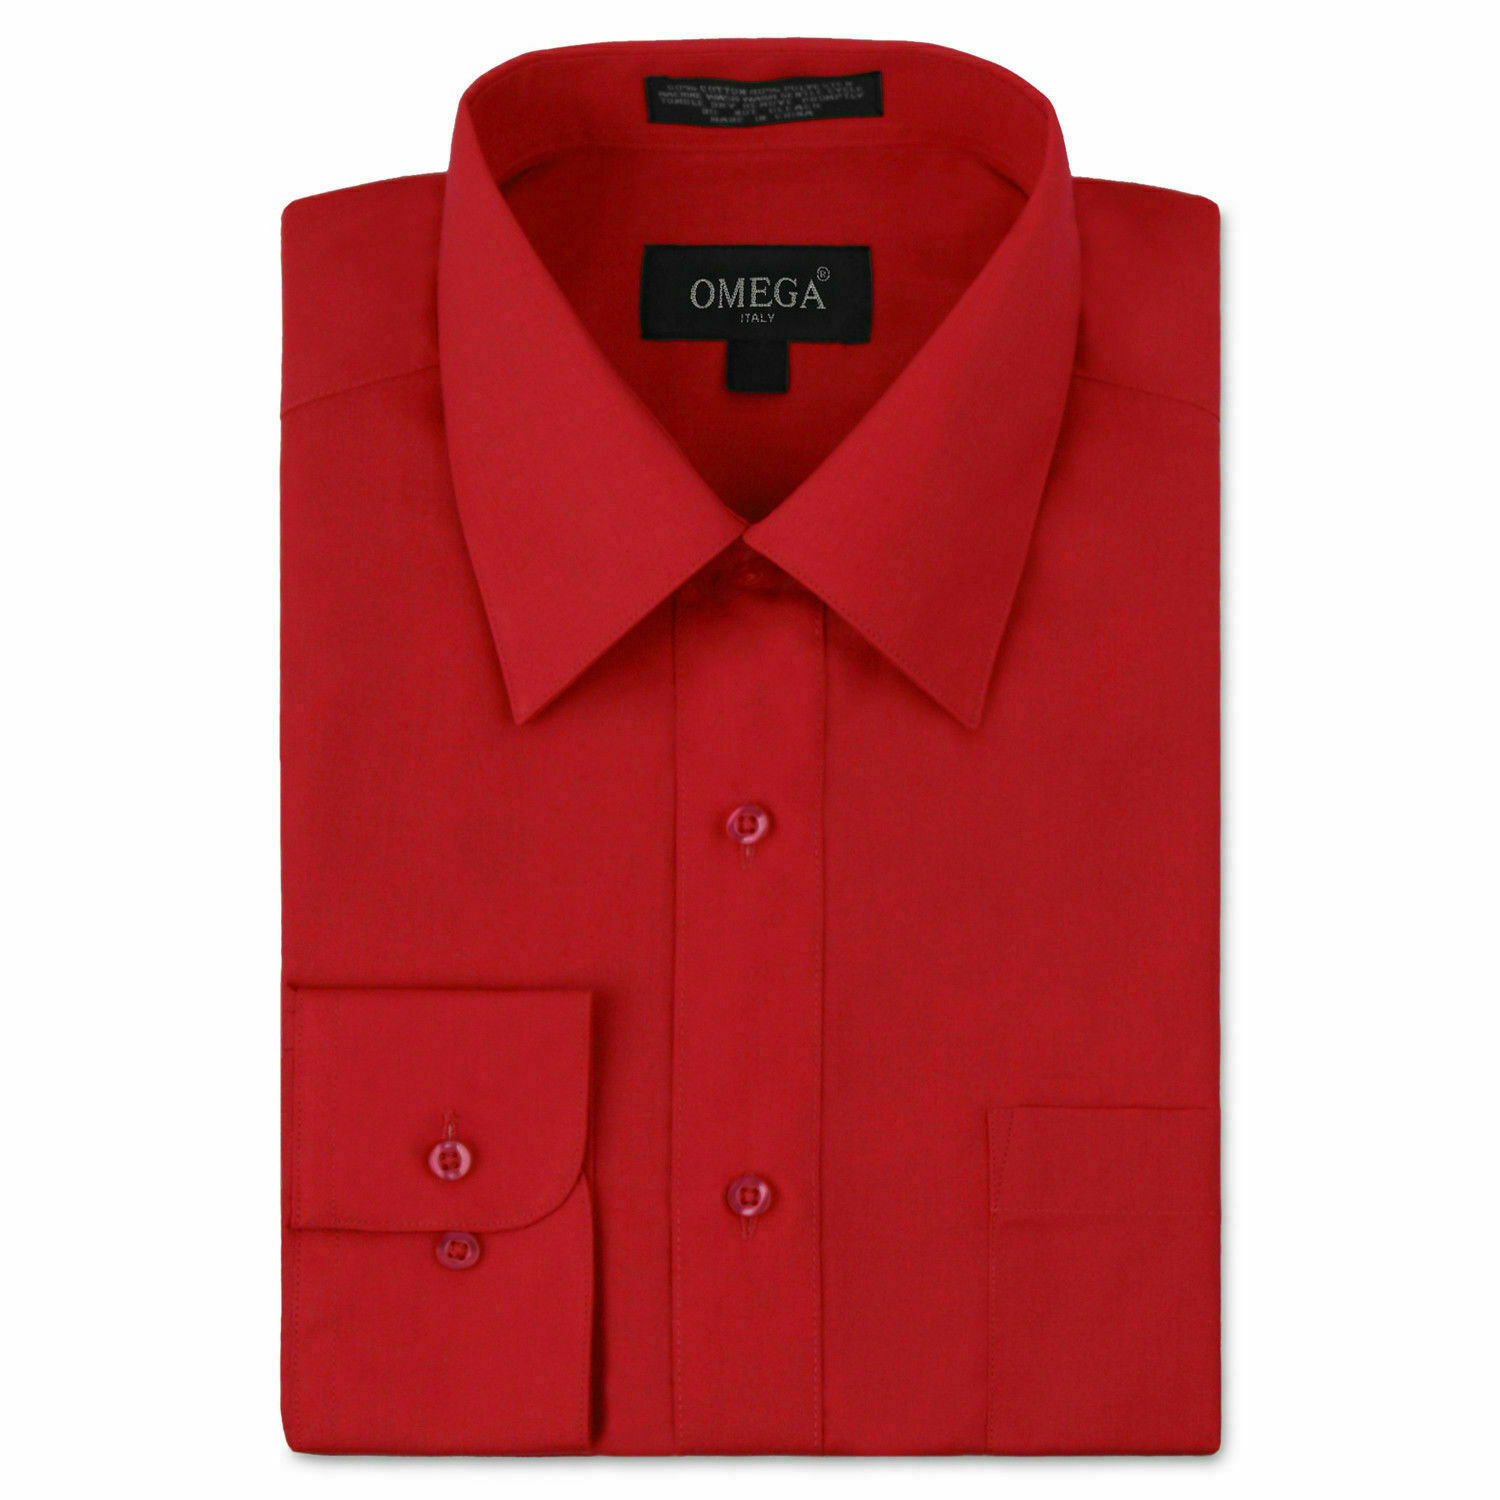 Berlioni Italy Men Red Classic French Convertible Cuff Solid Dress Shirt - L